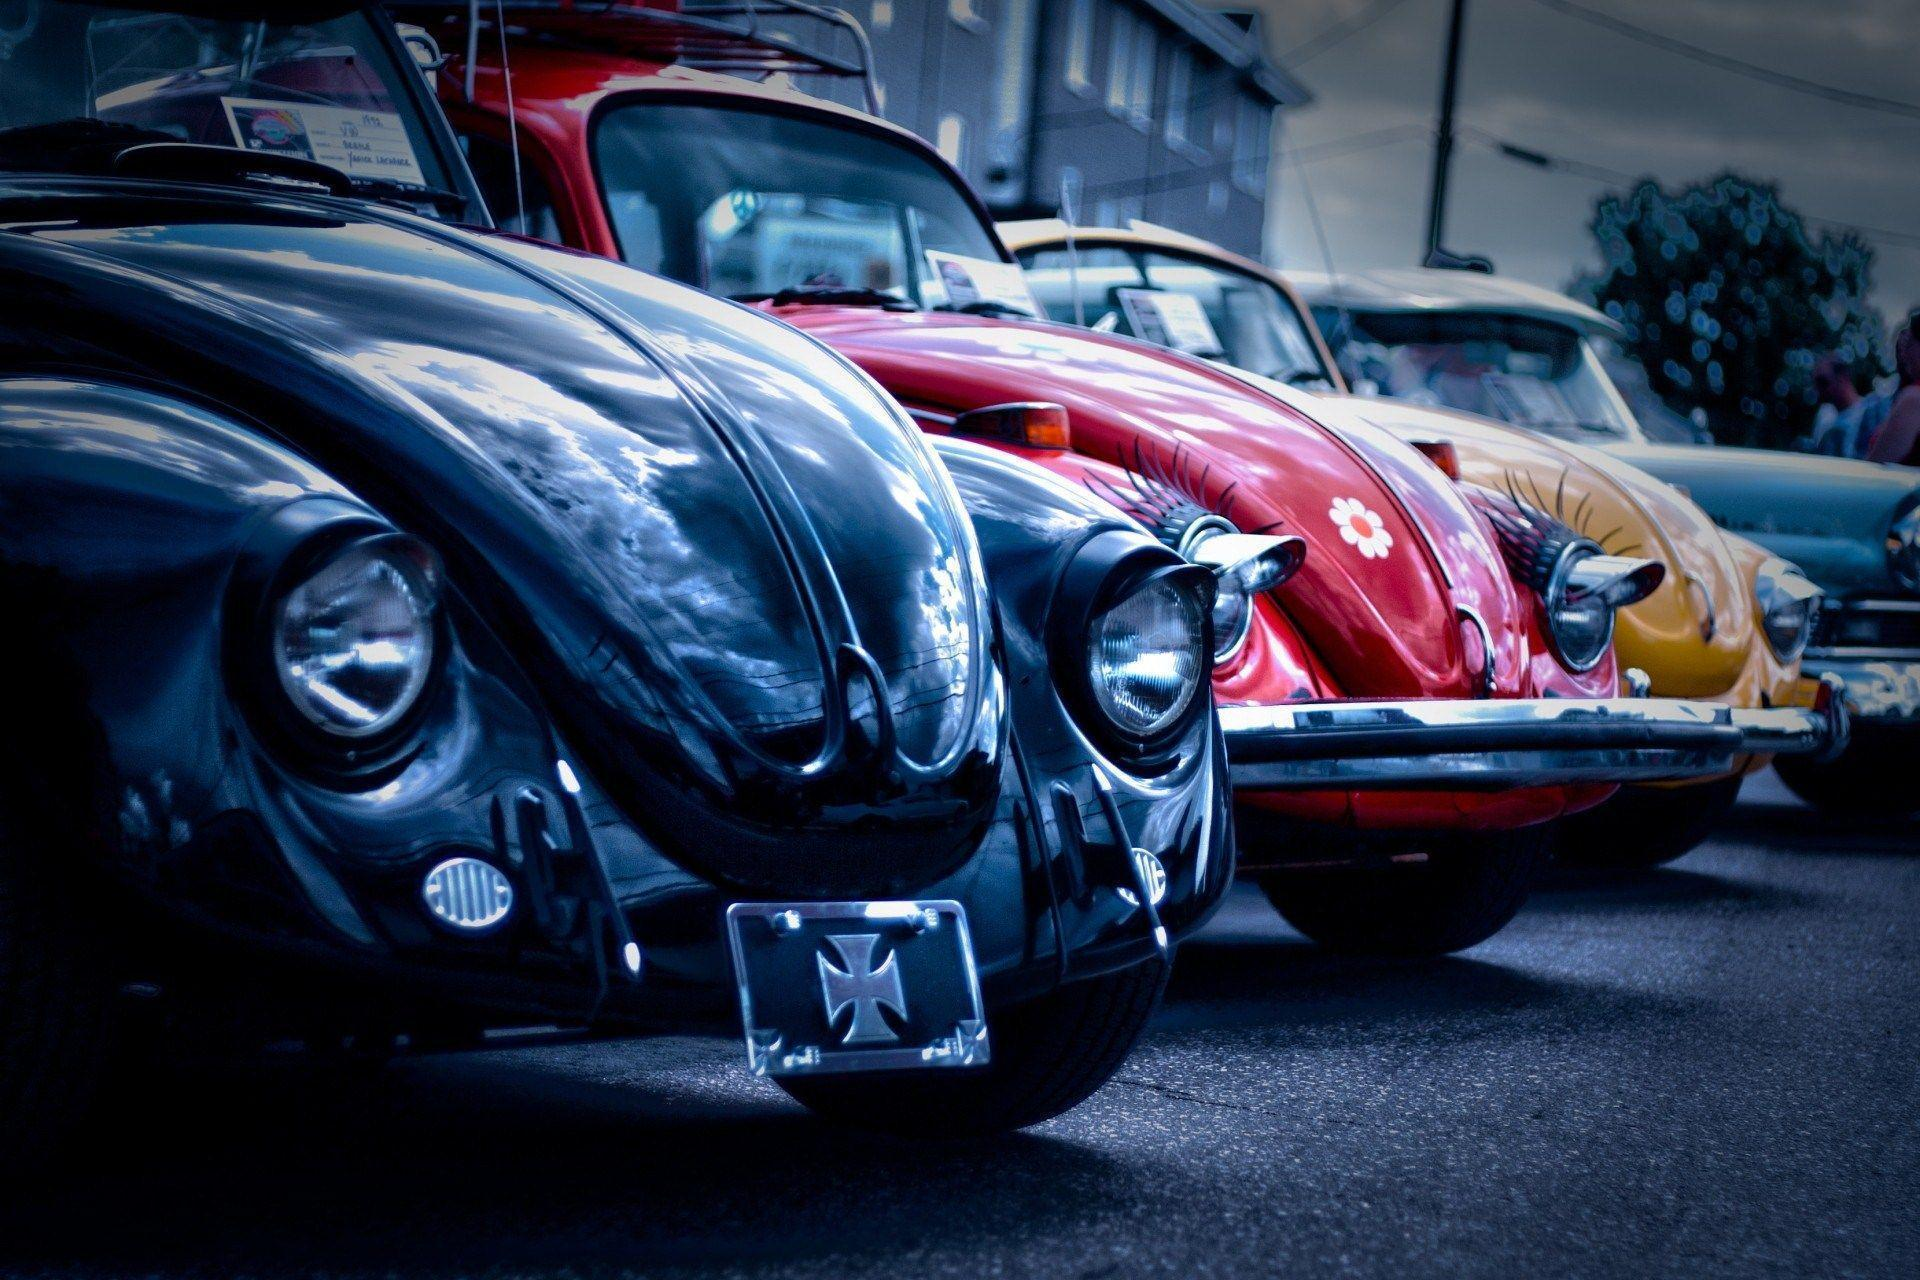 VW Beetle Wallpapers HD